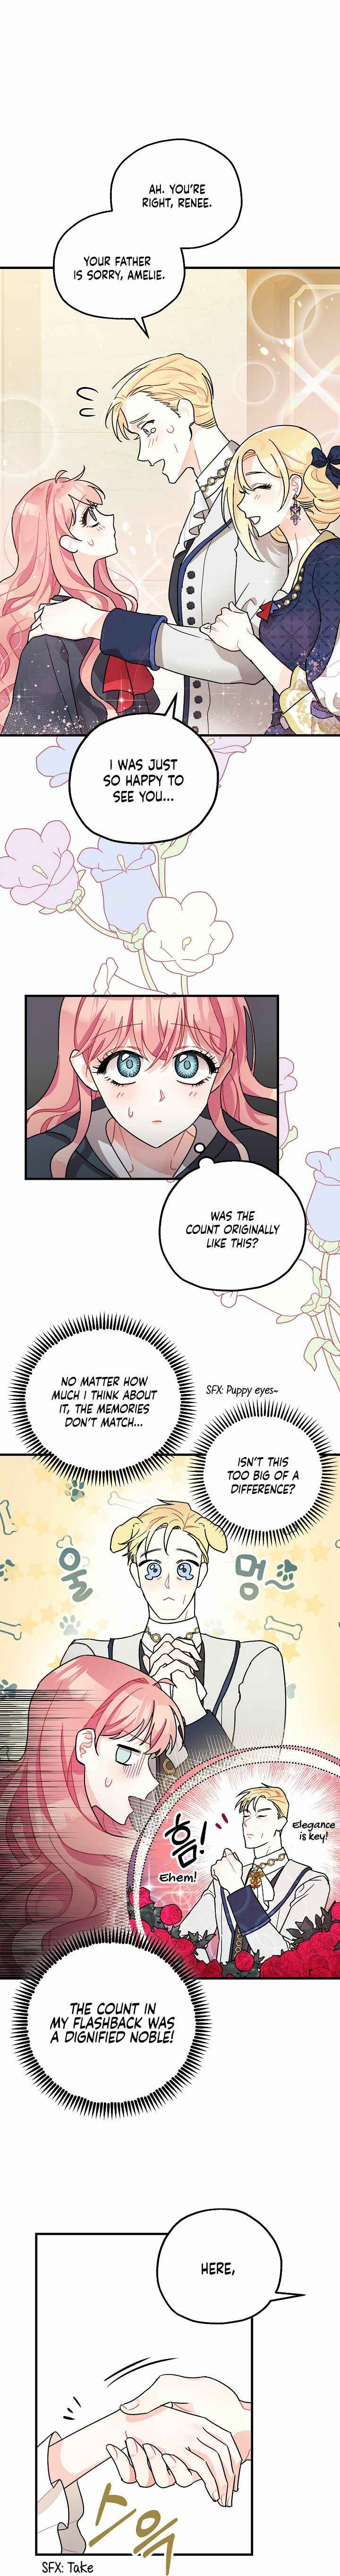 Tyrant's Tranquilizer - chapter 3-eng-li